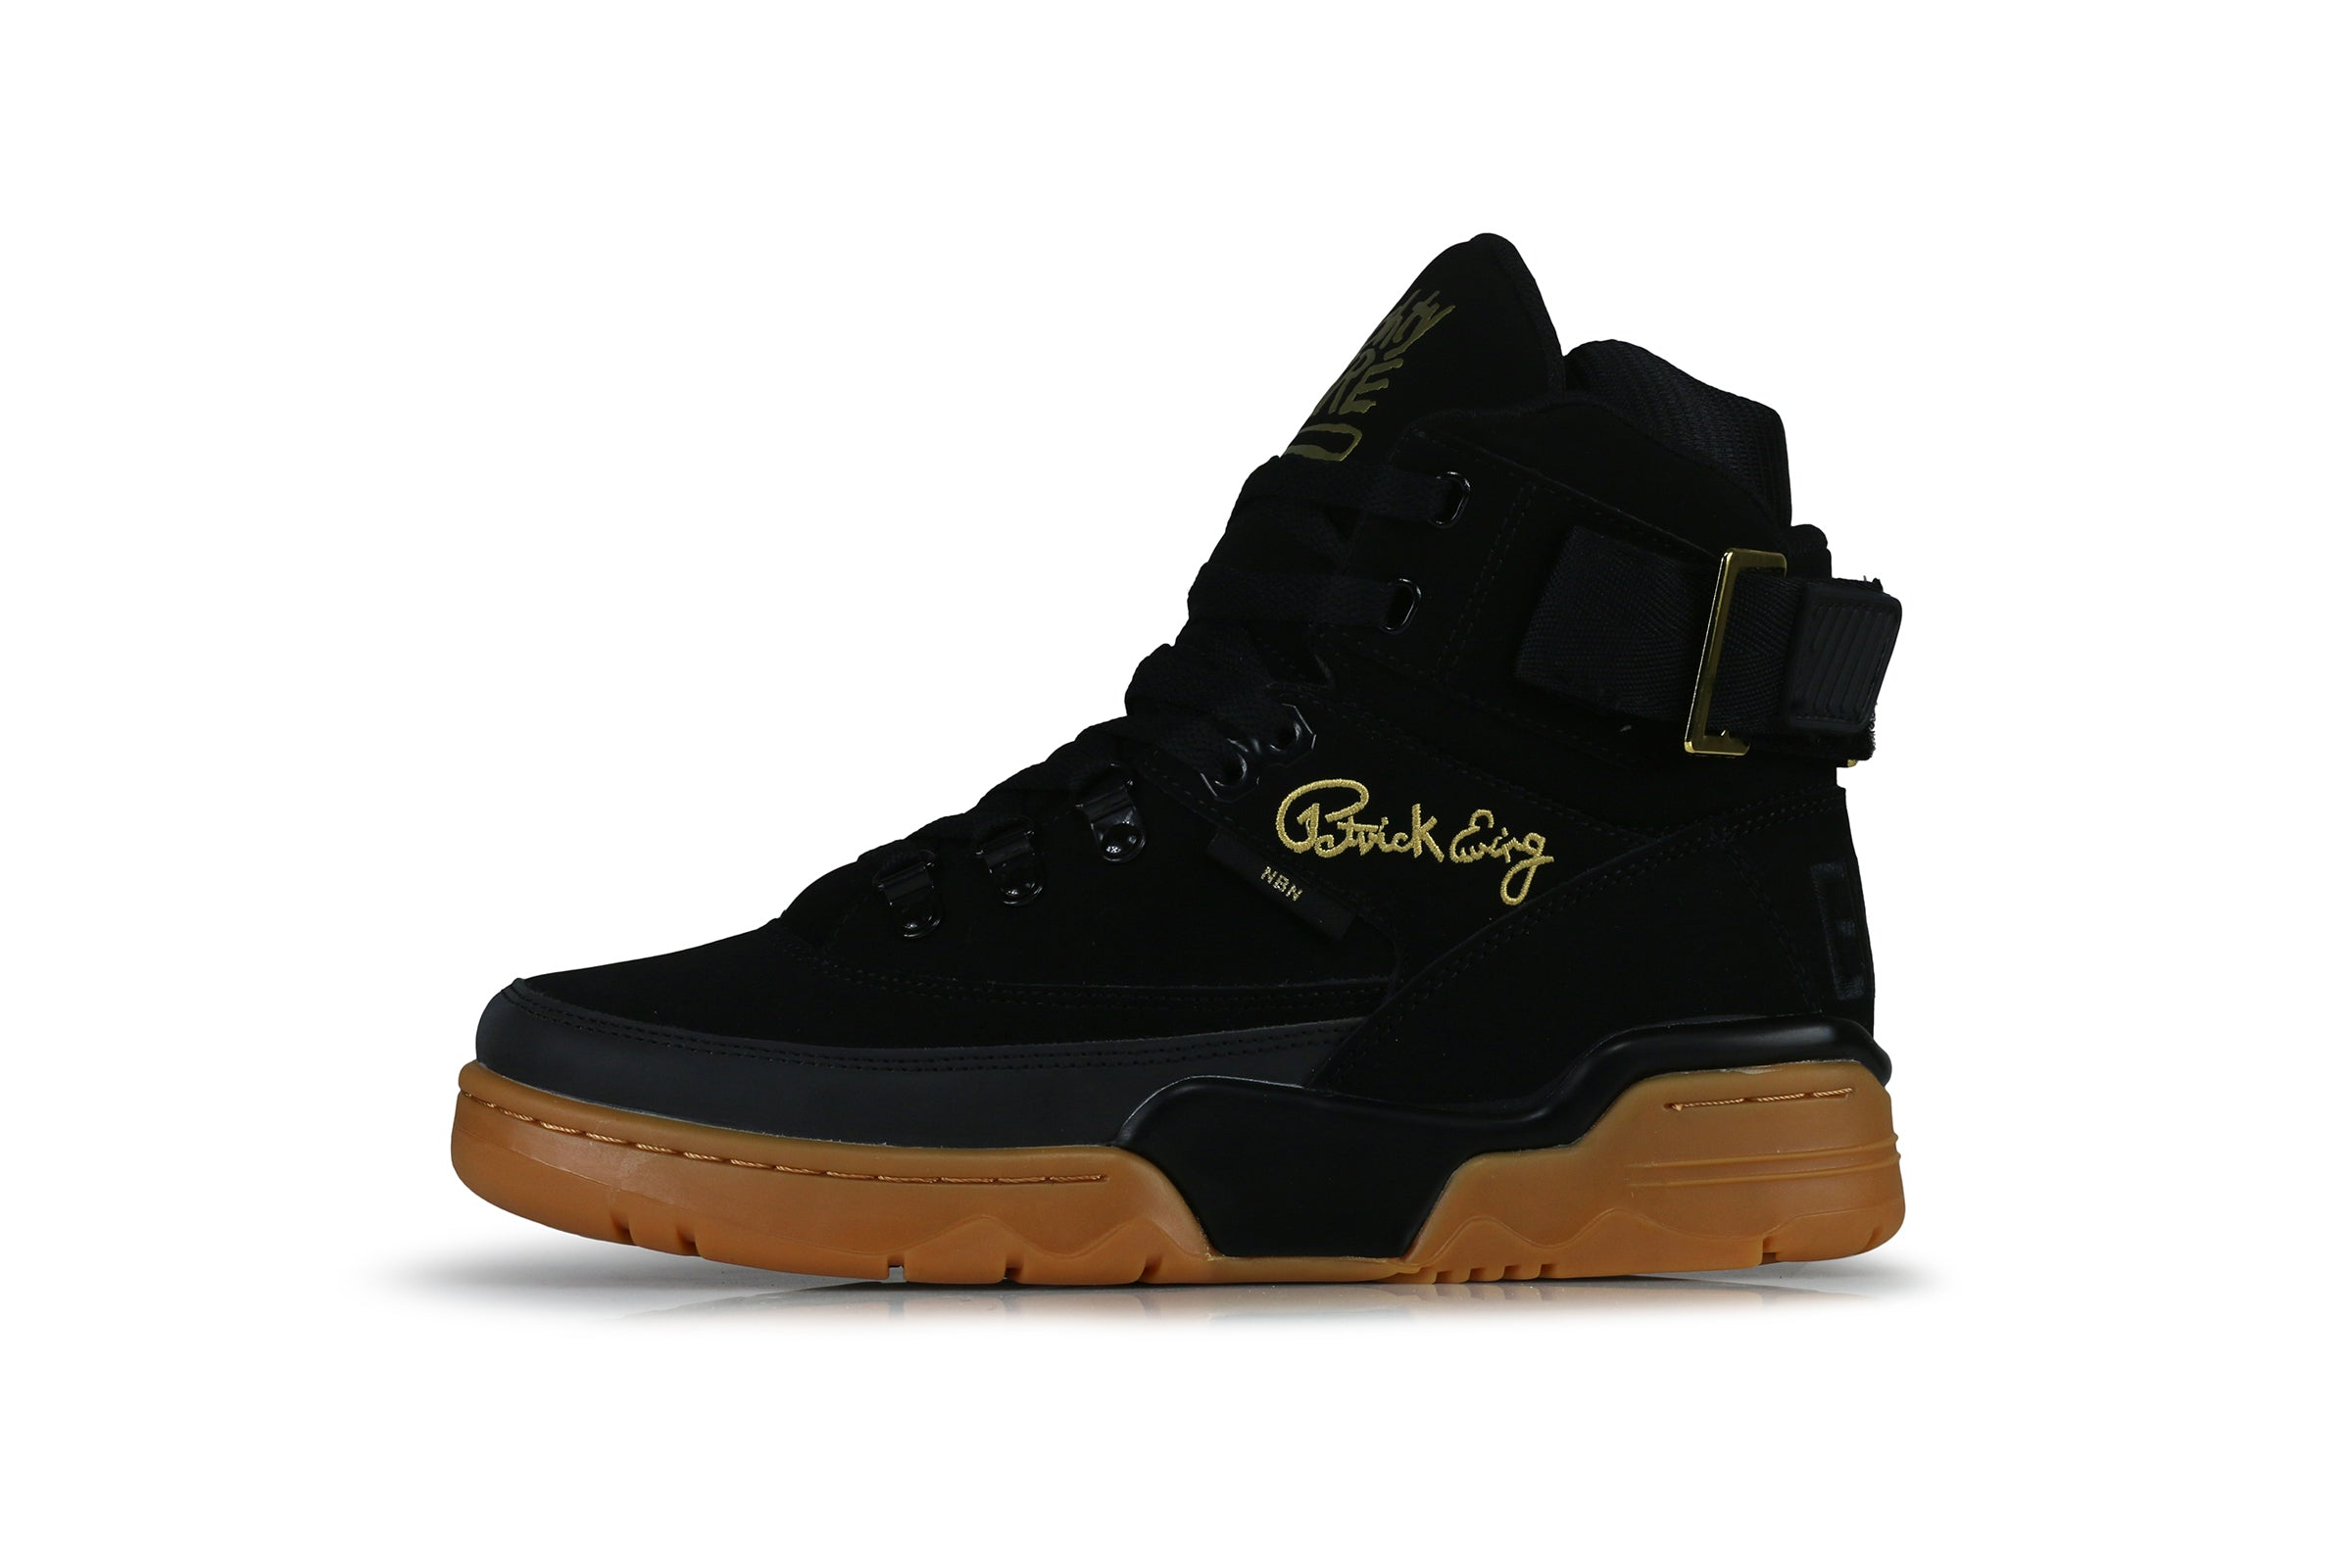 Patrick Ewing 33 Hi Winter x Naughty By Nature